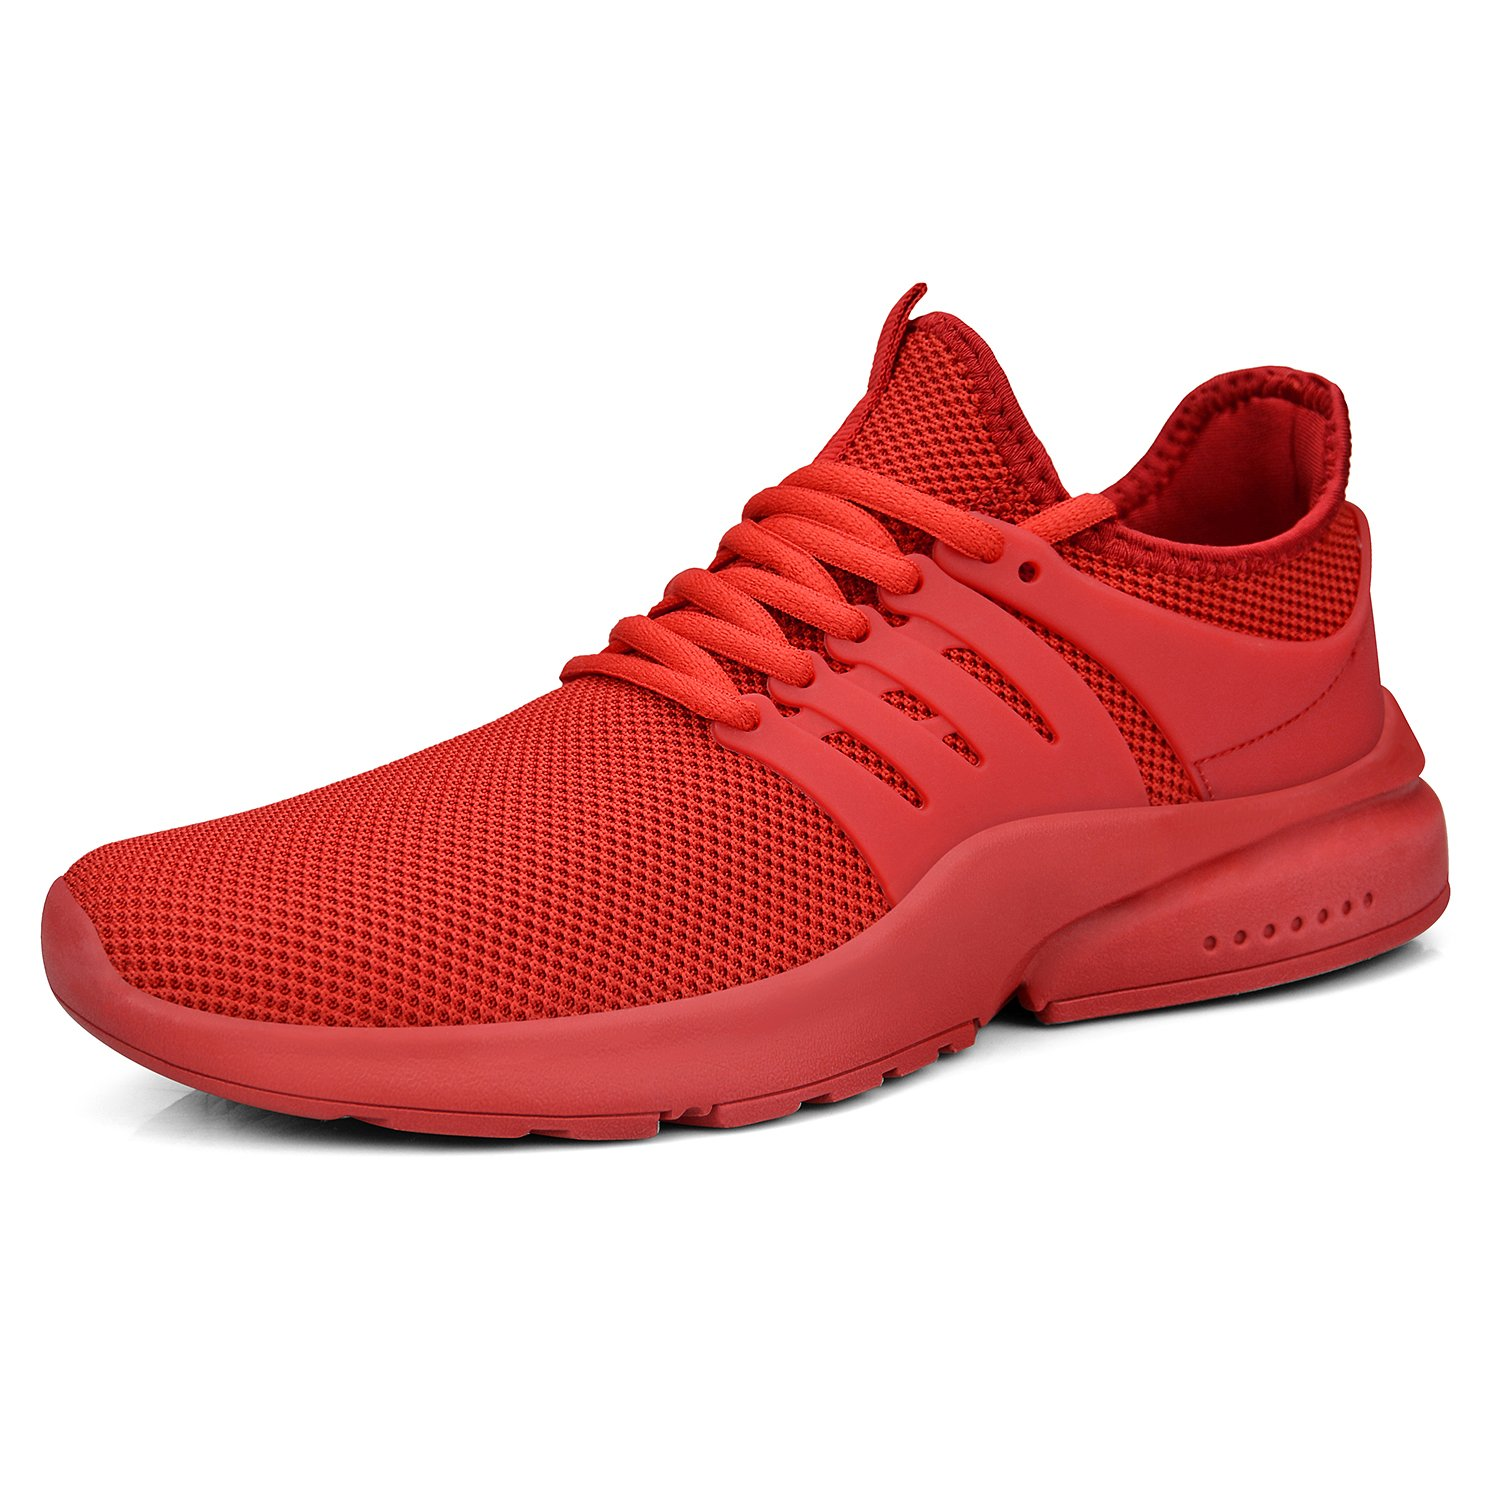 Feetmat Men's Athletic Shoes Ultra Lightweight Breathable Running Walking Training Sports Travel Casual Sneakers B07DN6LRJP 8 M US|Red